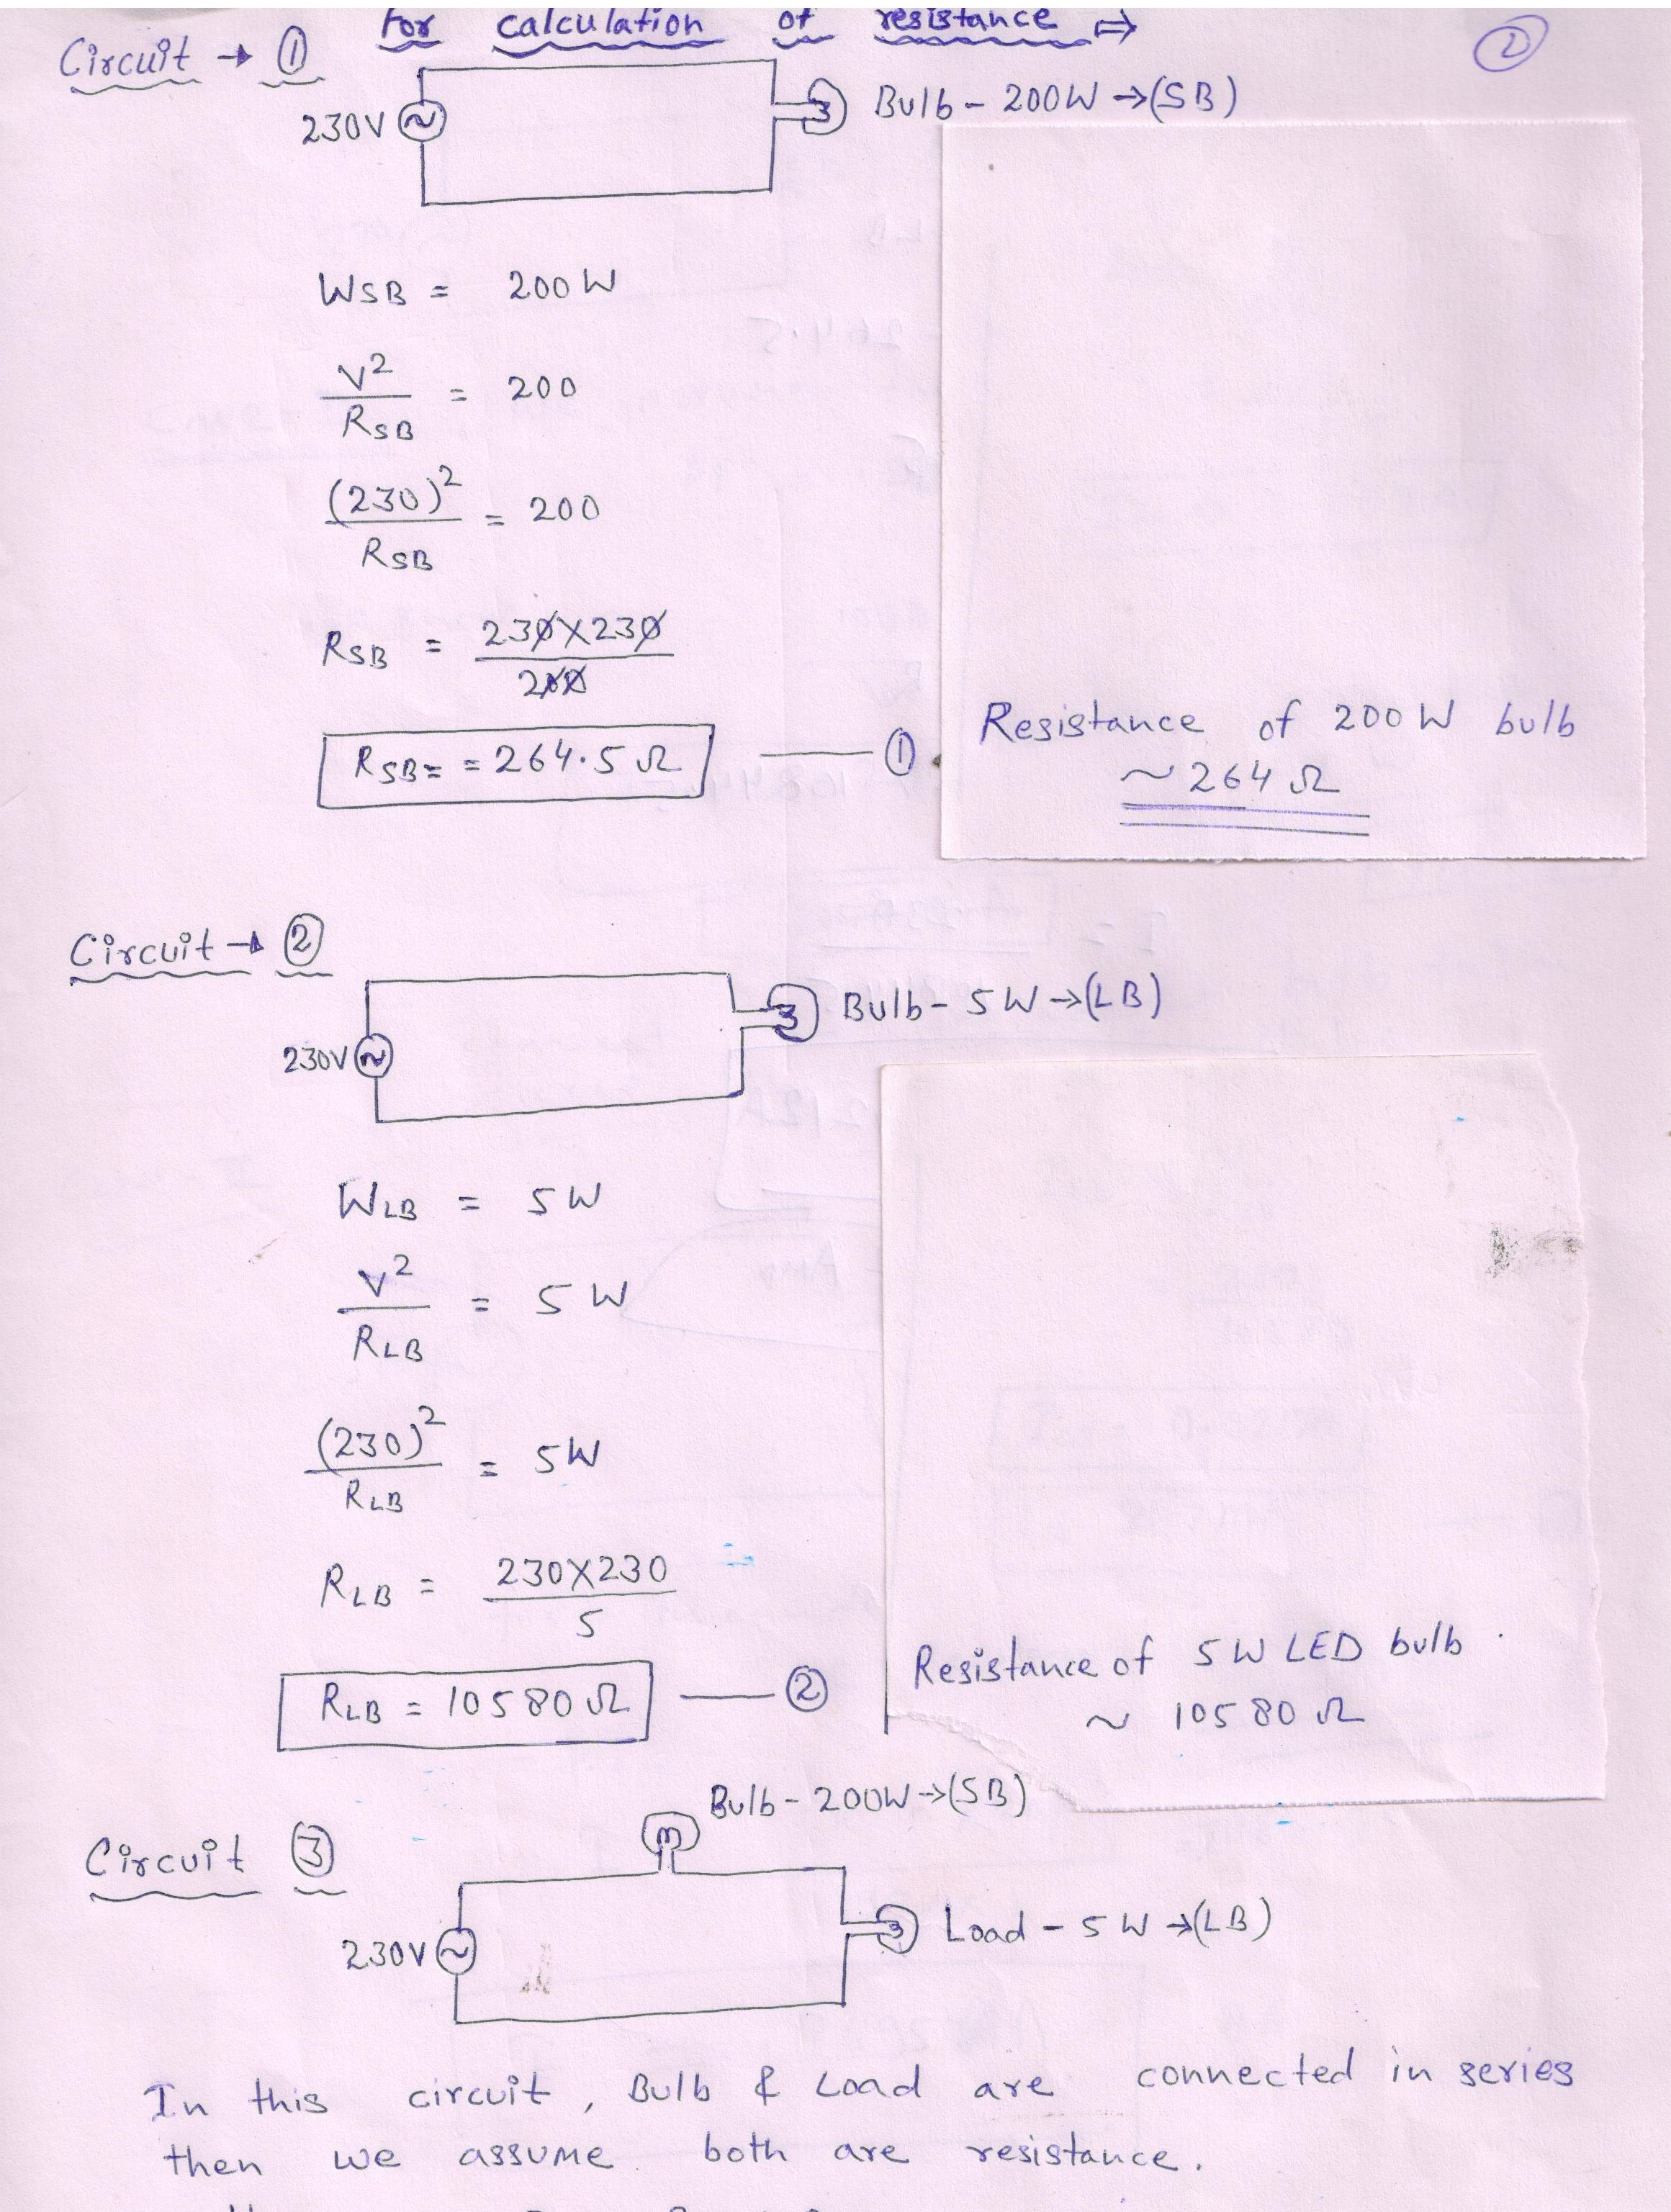 How To Provide Short Circuit Protection Testing Equipment Led Wiring Diagram Calculator Calculation Of Resistance For 5 Watt Bulb And 200 Incandenscent In Protecfor